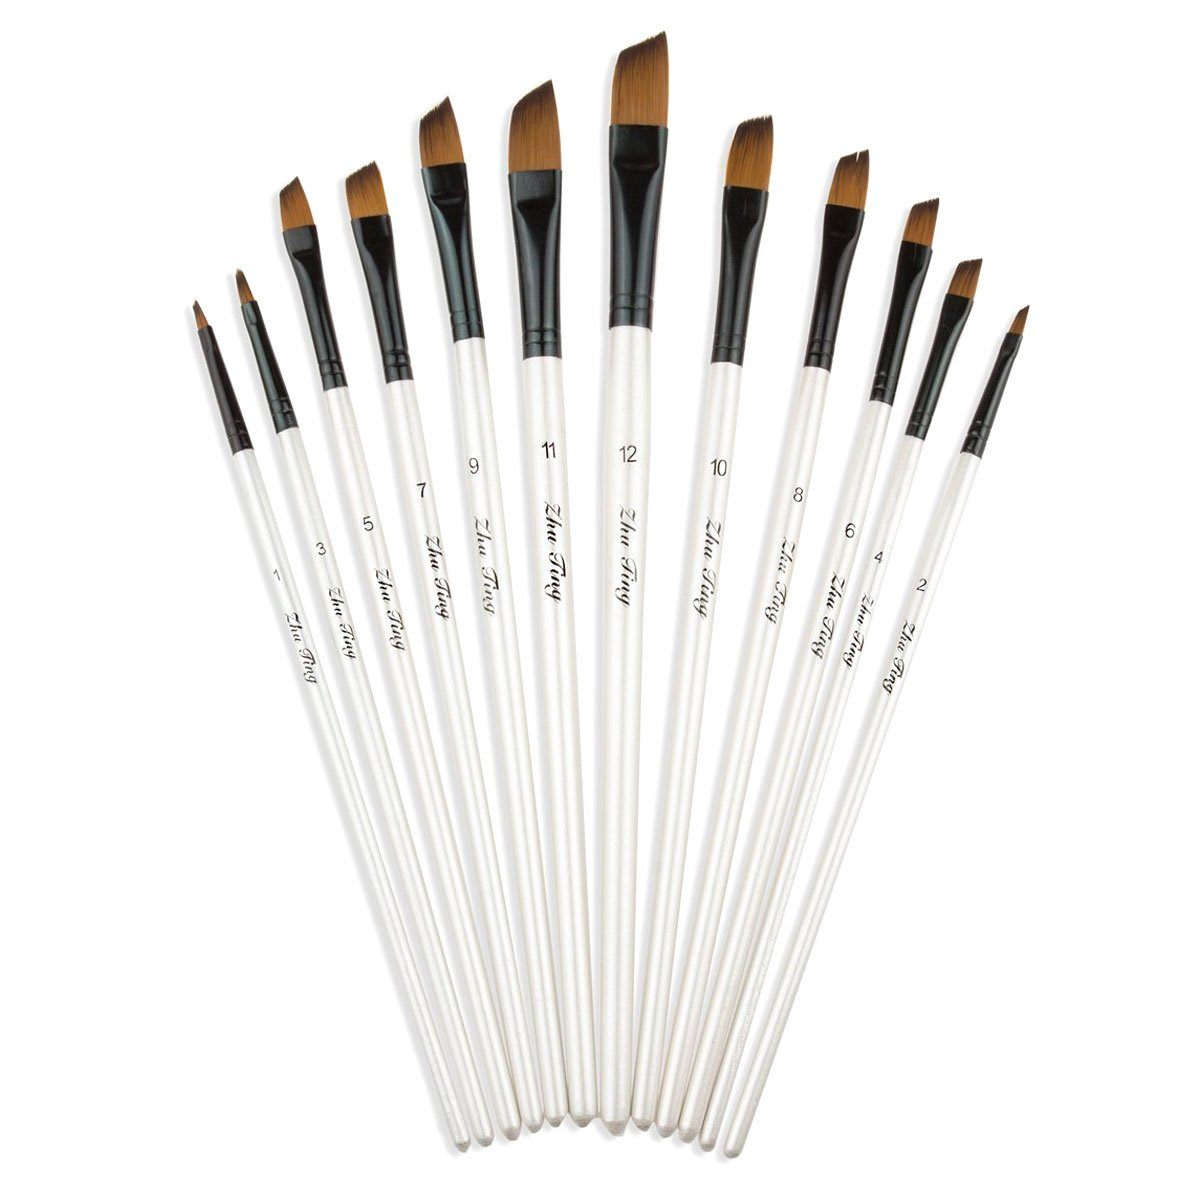 CBTONE Angular Paint Brush, 12pcs Nylon Hair Angled Paint Brushes Set Art Paintbrush for Watercolor, Acrylic, Gouache, Oil Painting - White